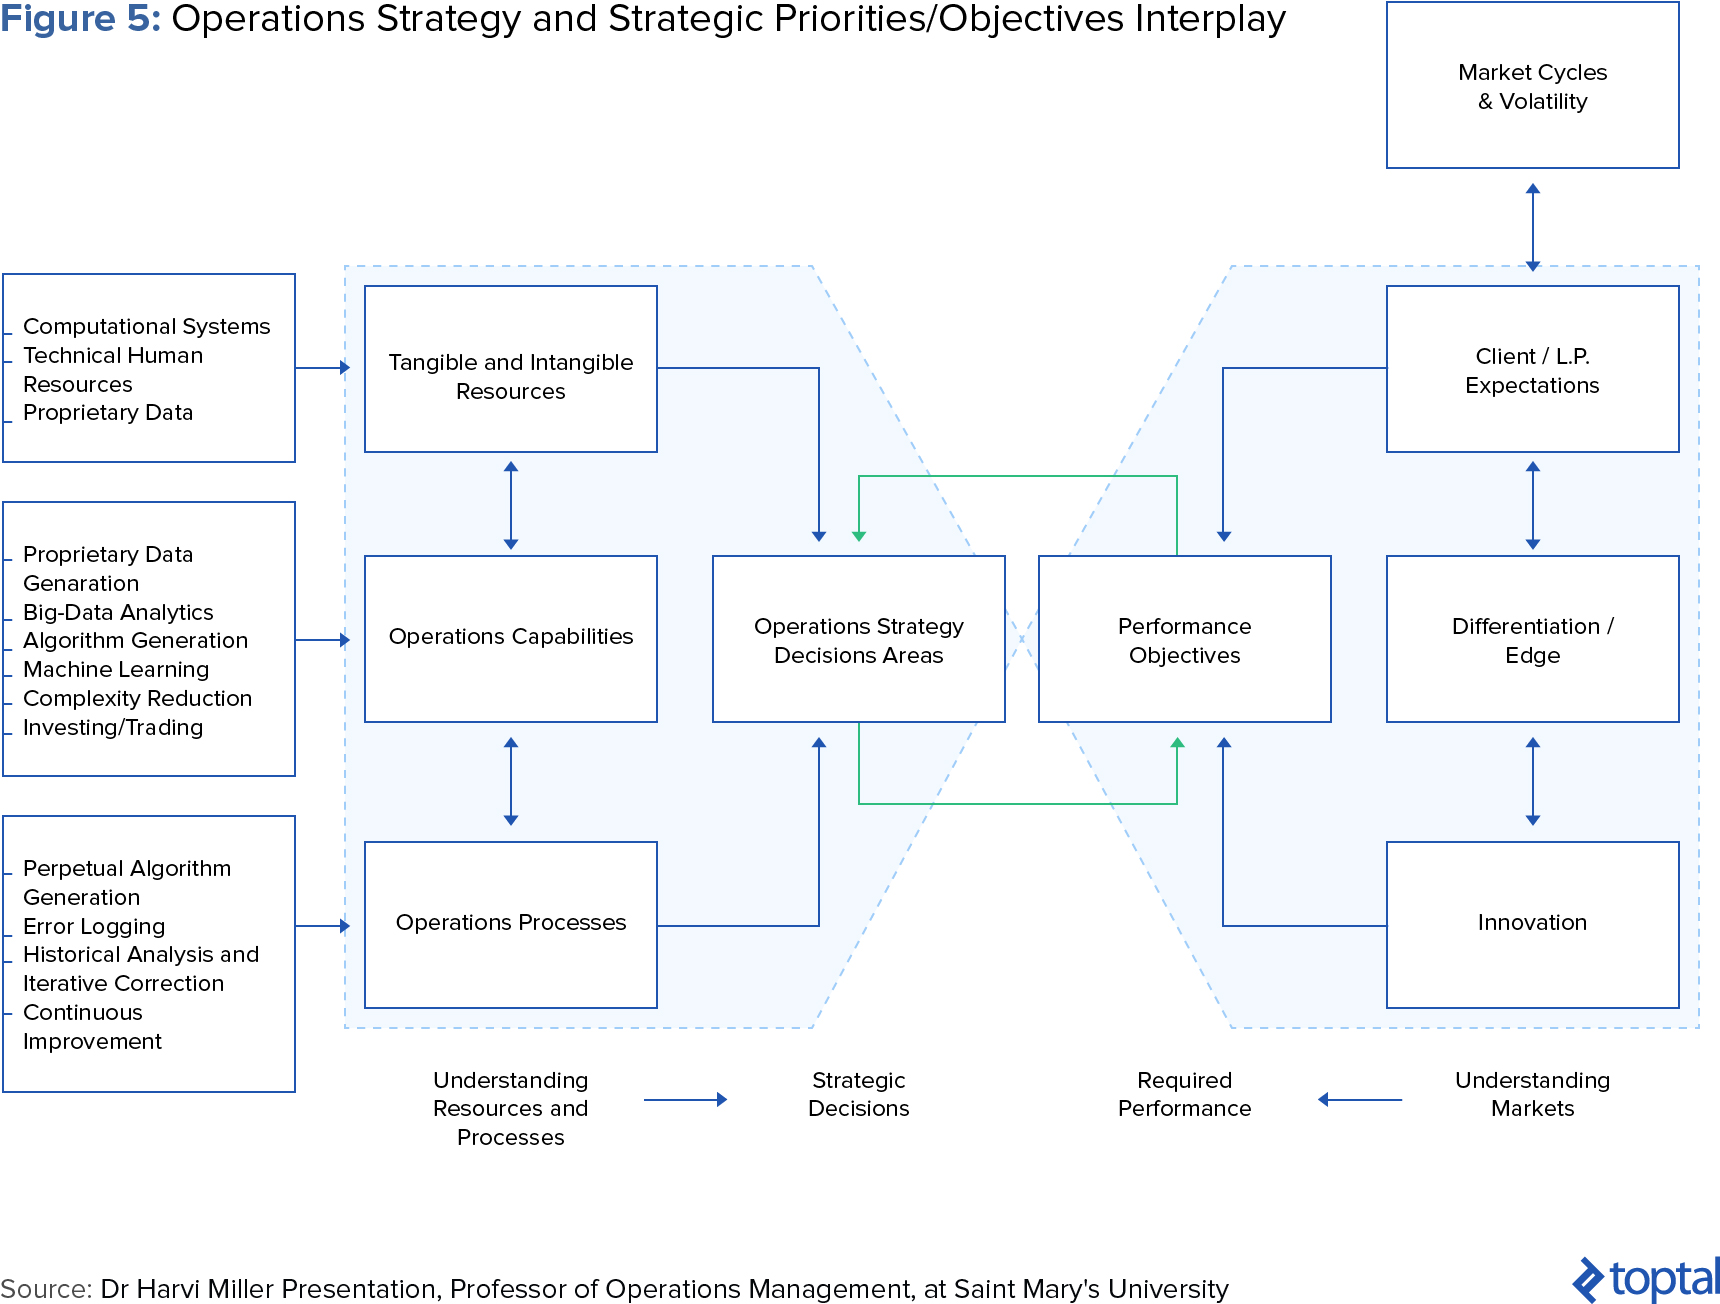 Figure 5: Operations Strategy and Strategic Priorities/Objectives Interplay